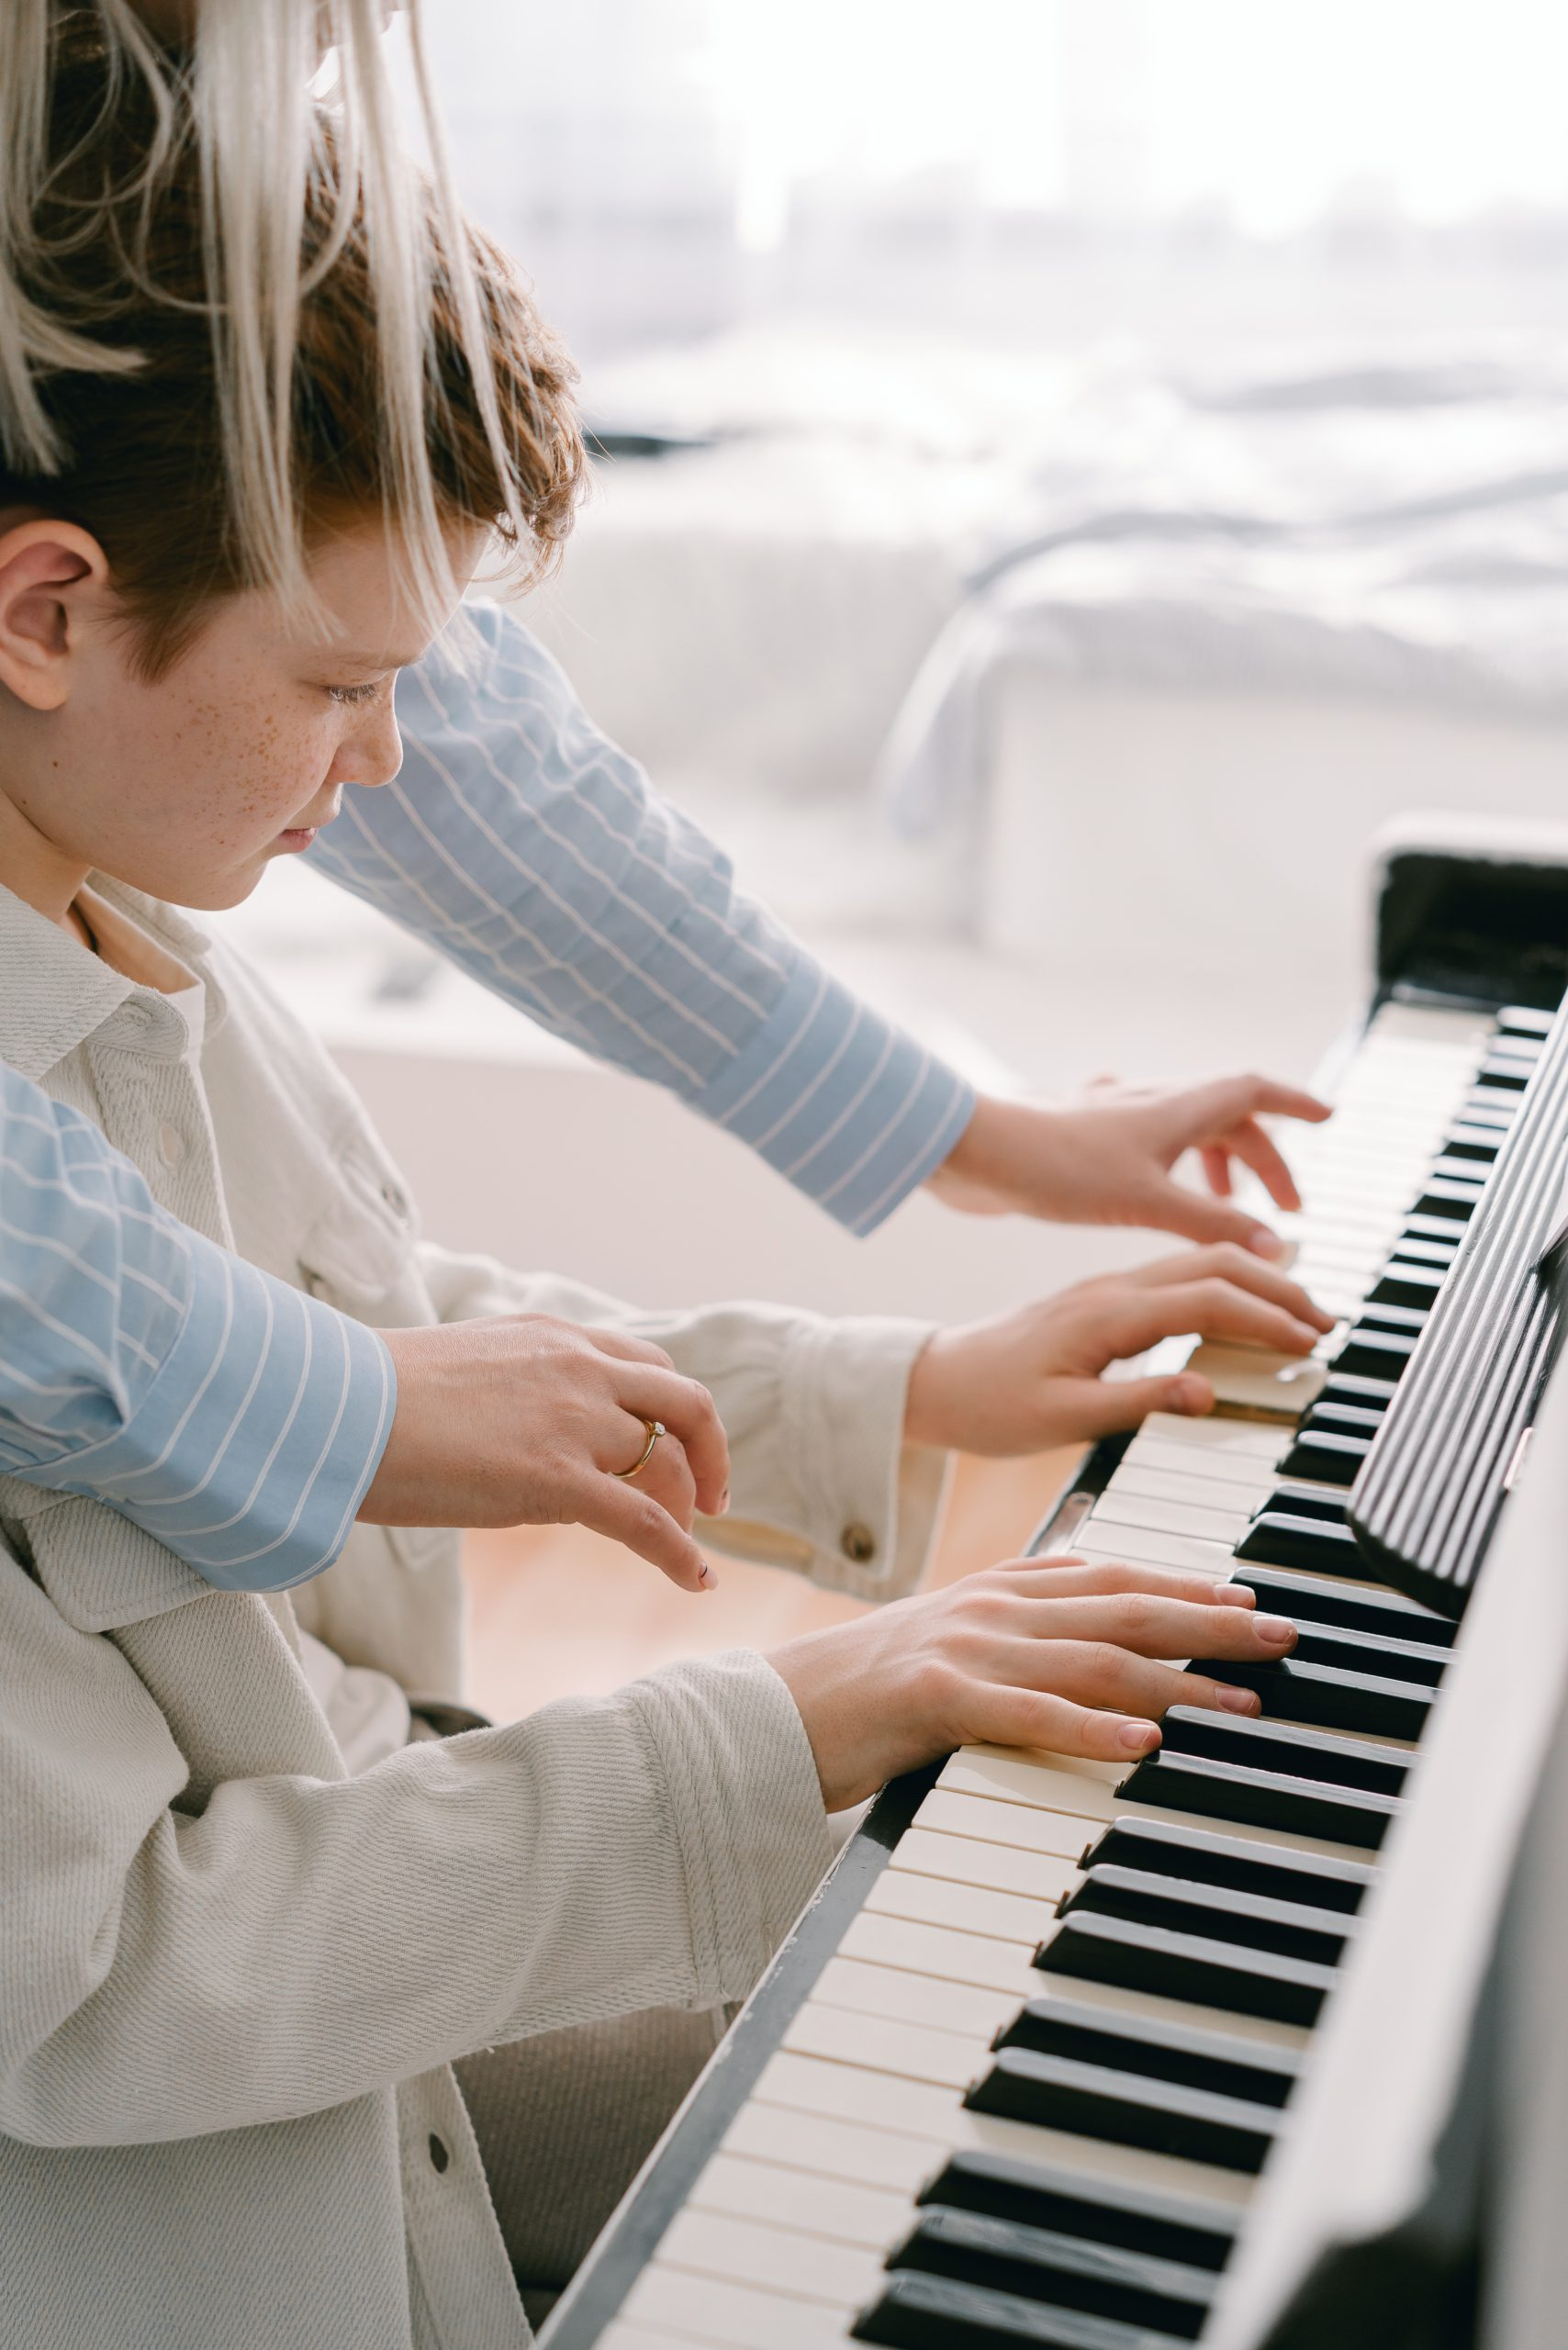 5 Crucial Life Skills Children Develop by Learning Music